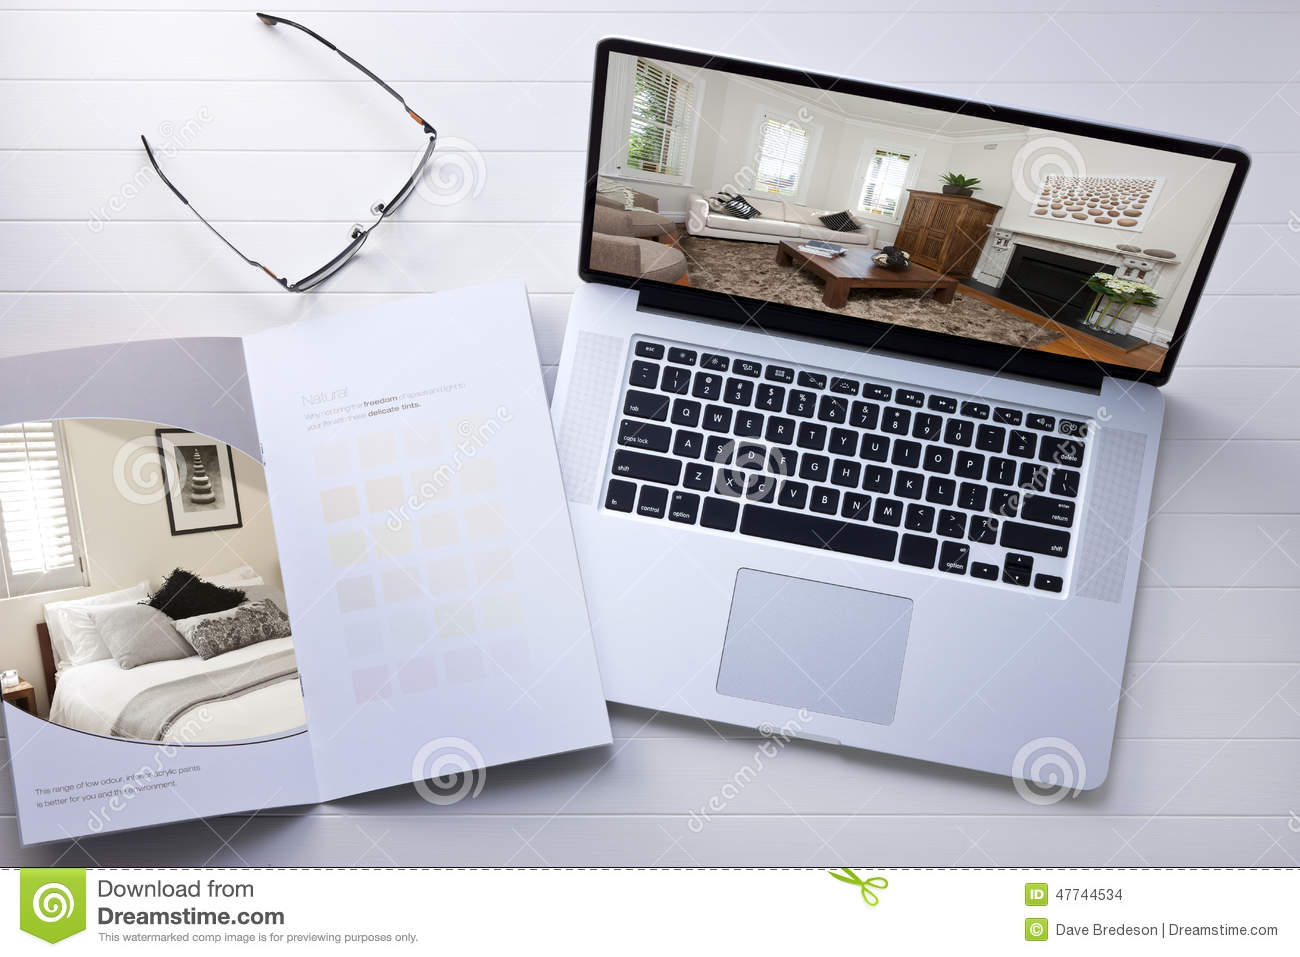 A still life with a laptop computer and paint sample brochure